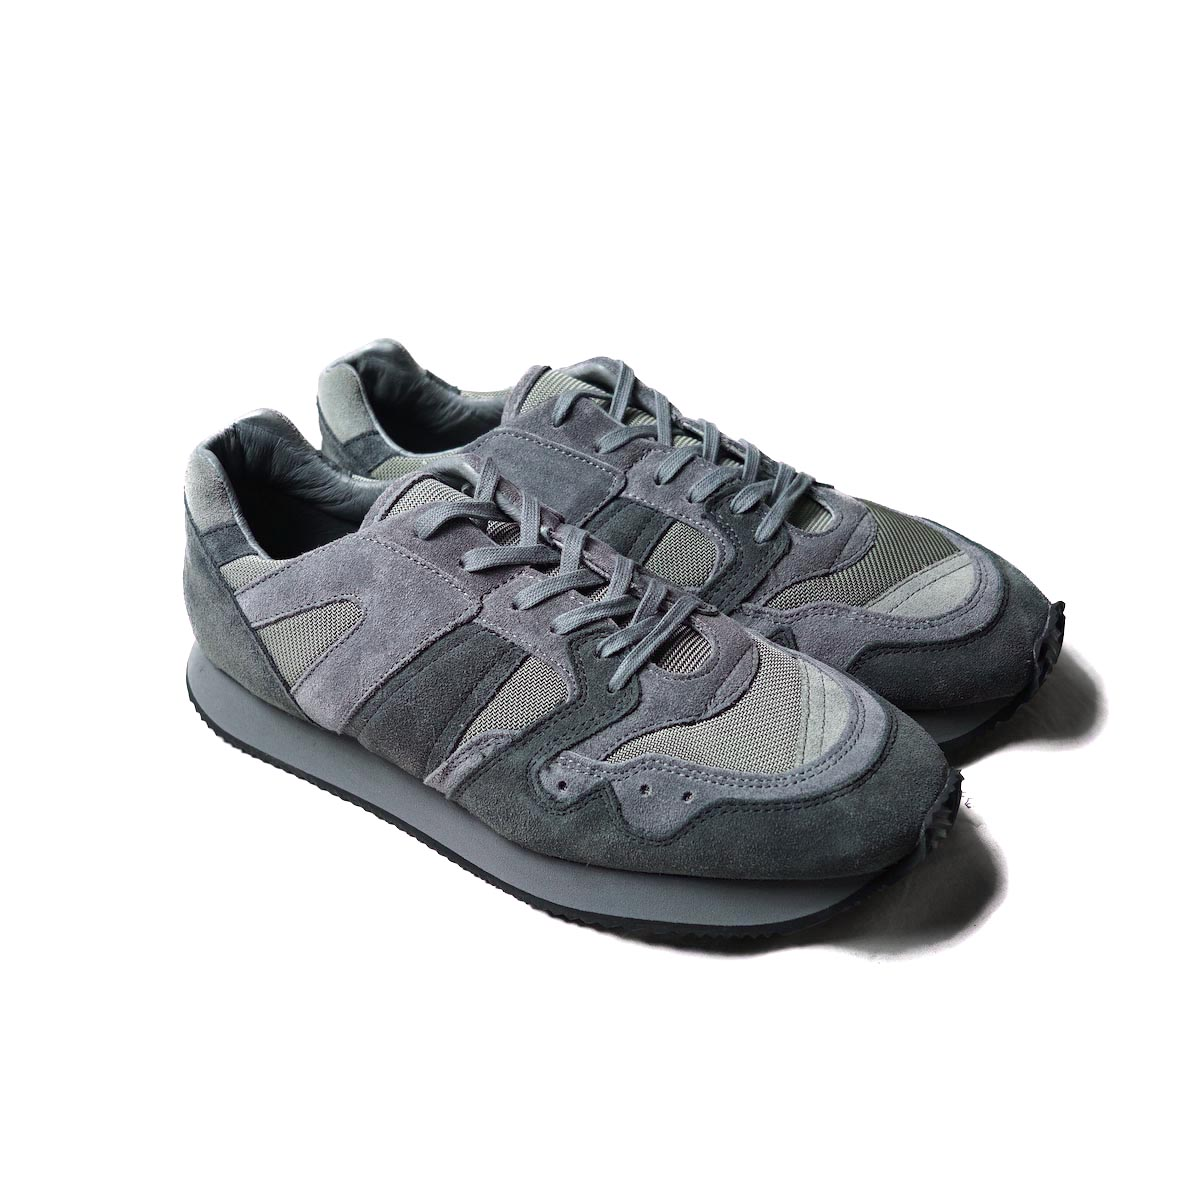 Blurhms × REPRODUCTION OF FOUND / Multi Military Trainer (Gray)